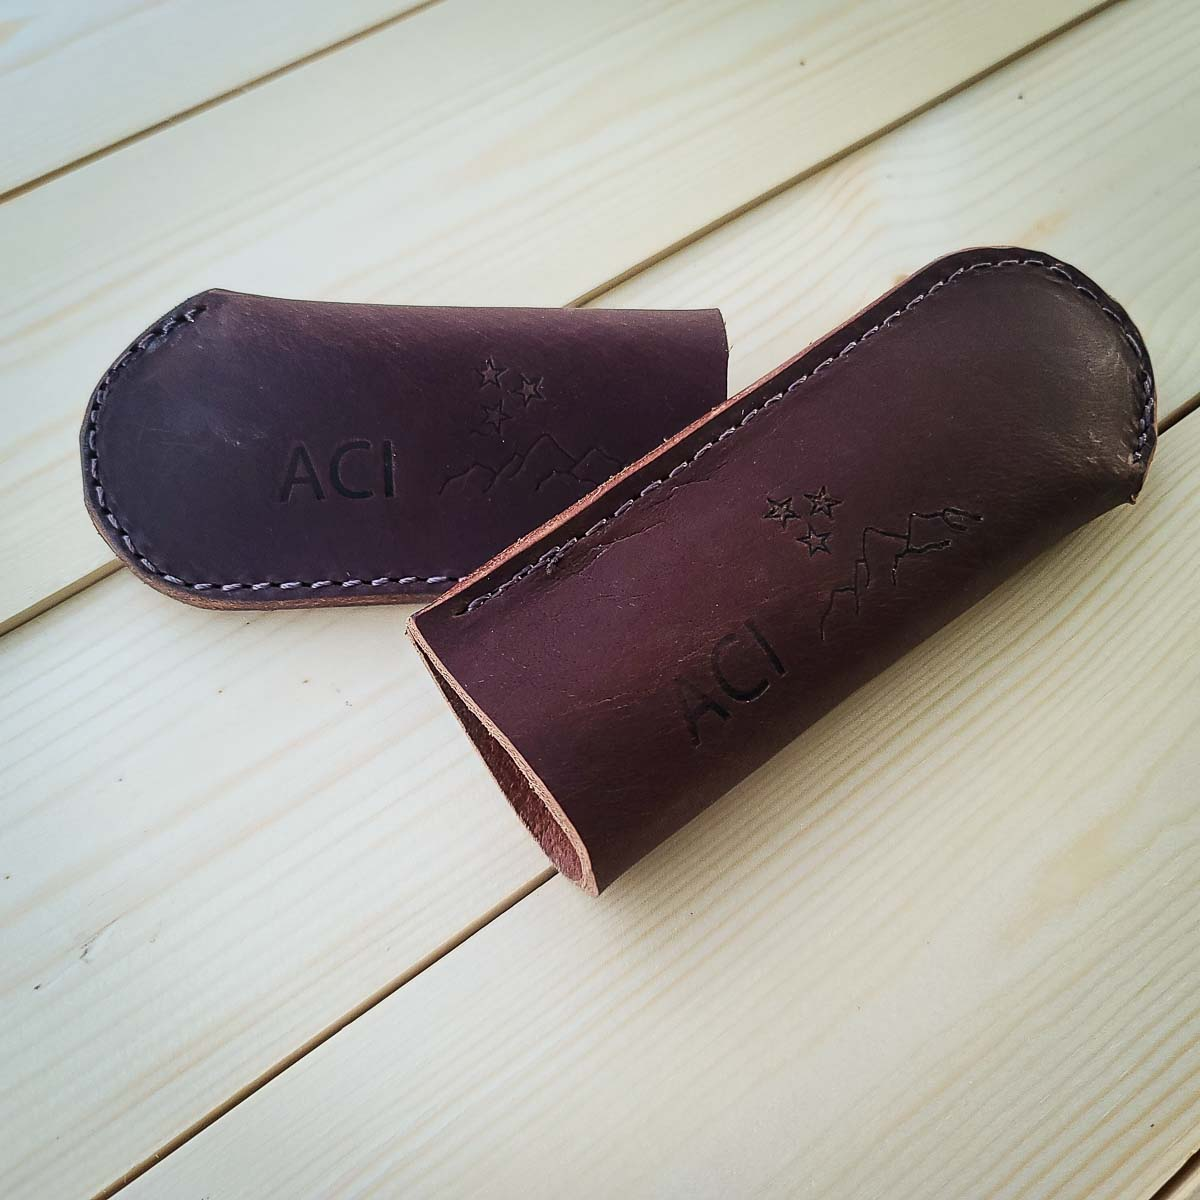 Heavy Duty Folded Leather Handle Cover, 4.5 inch or 5.5 inch